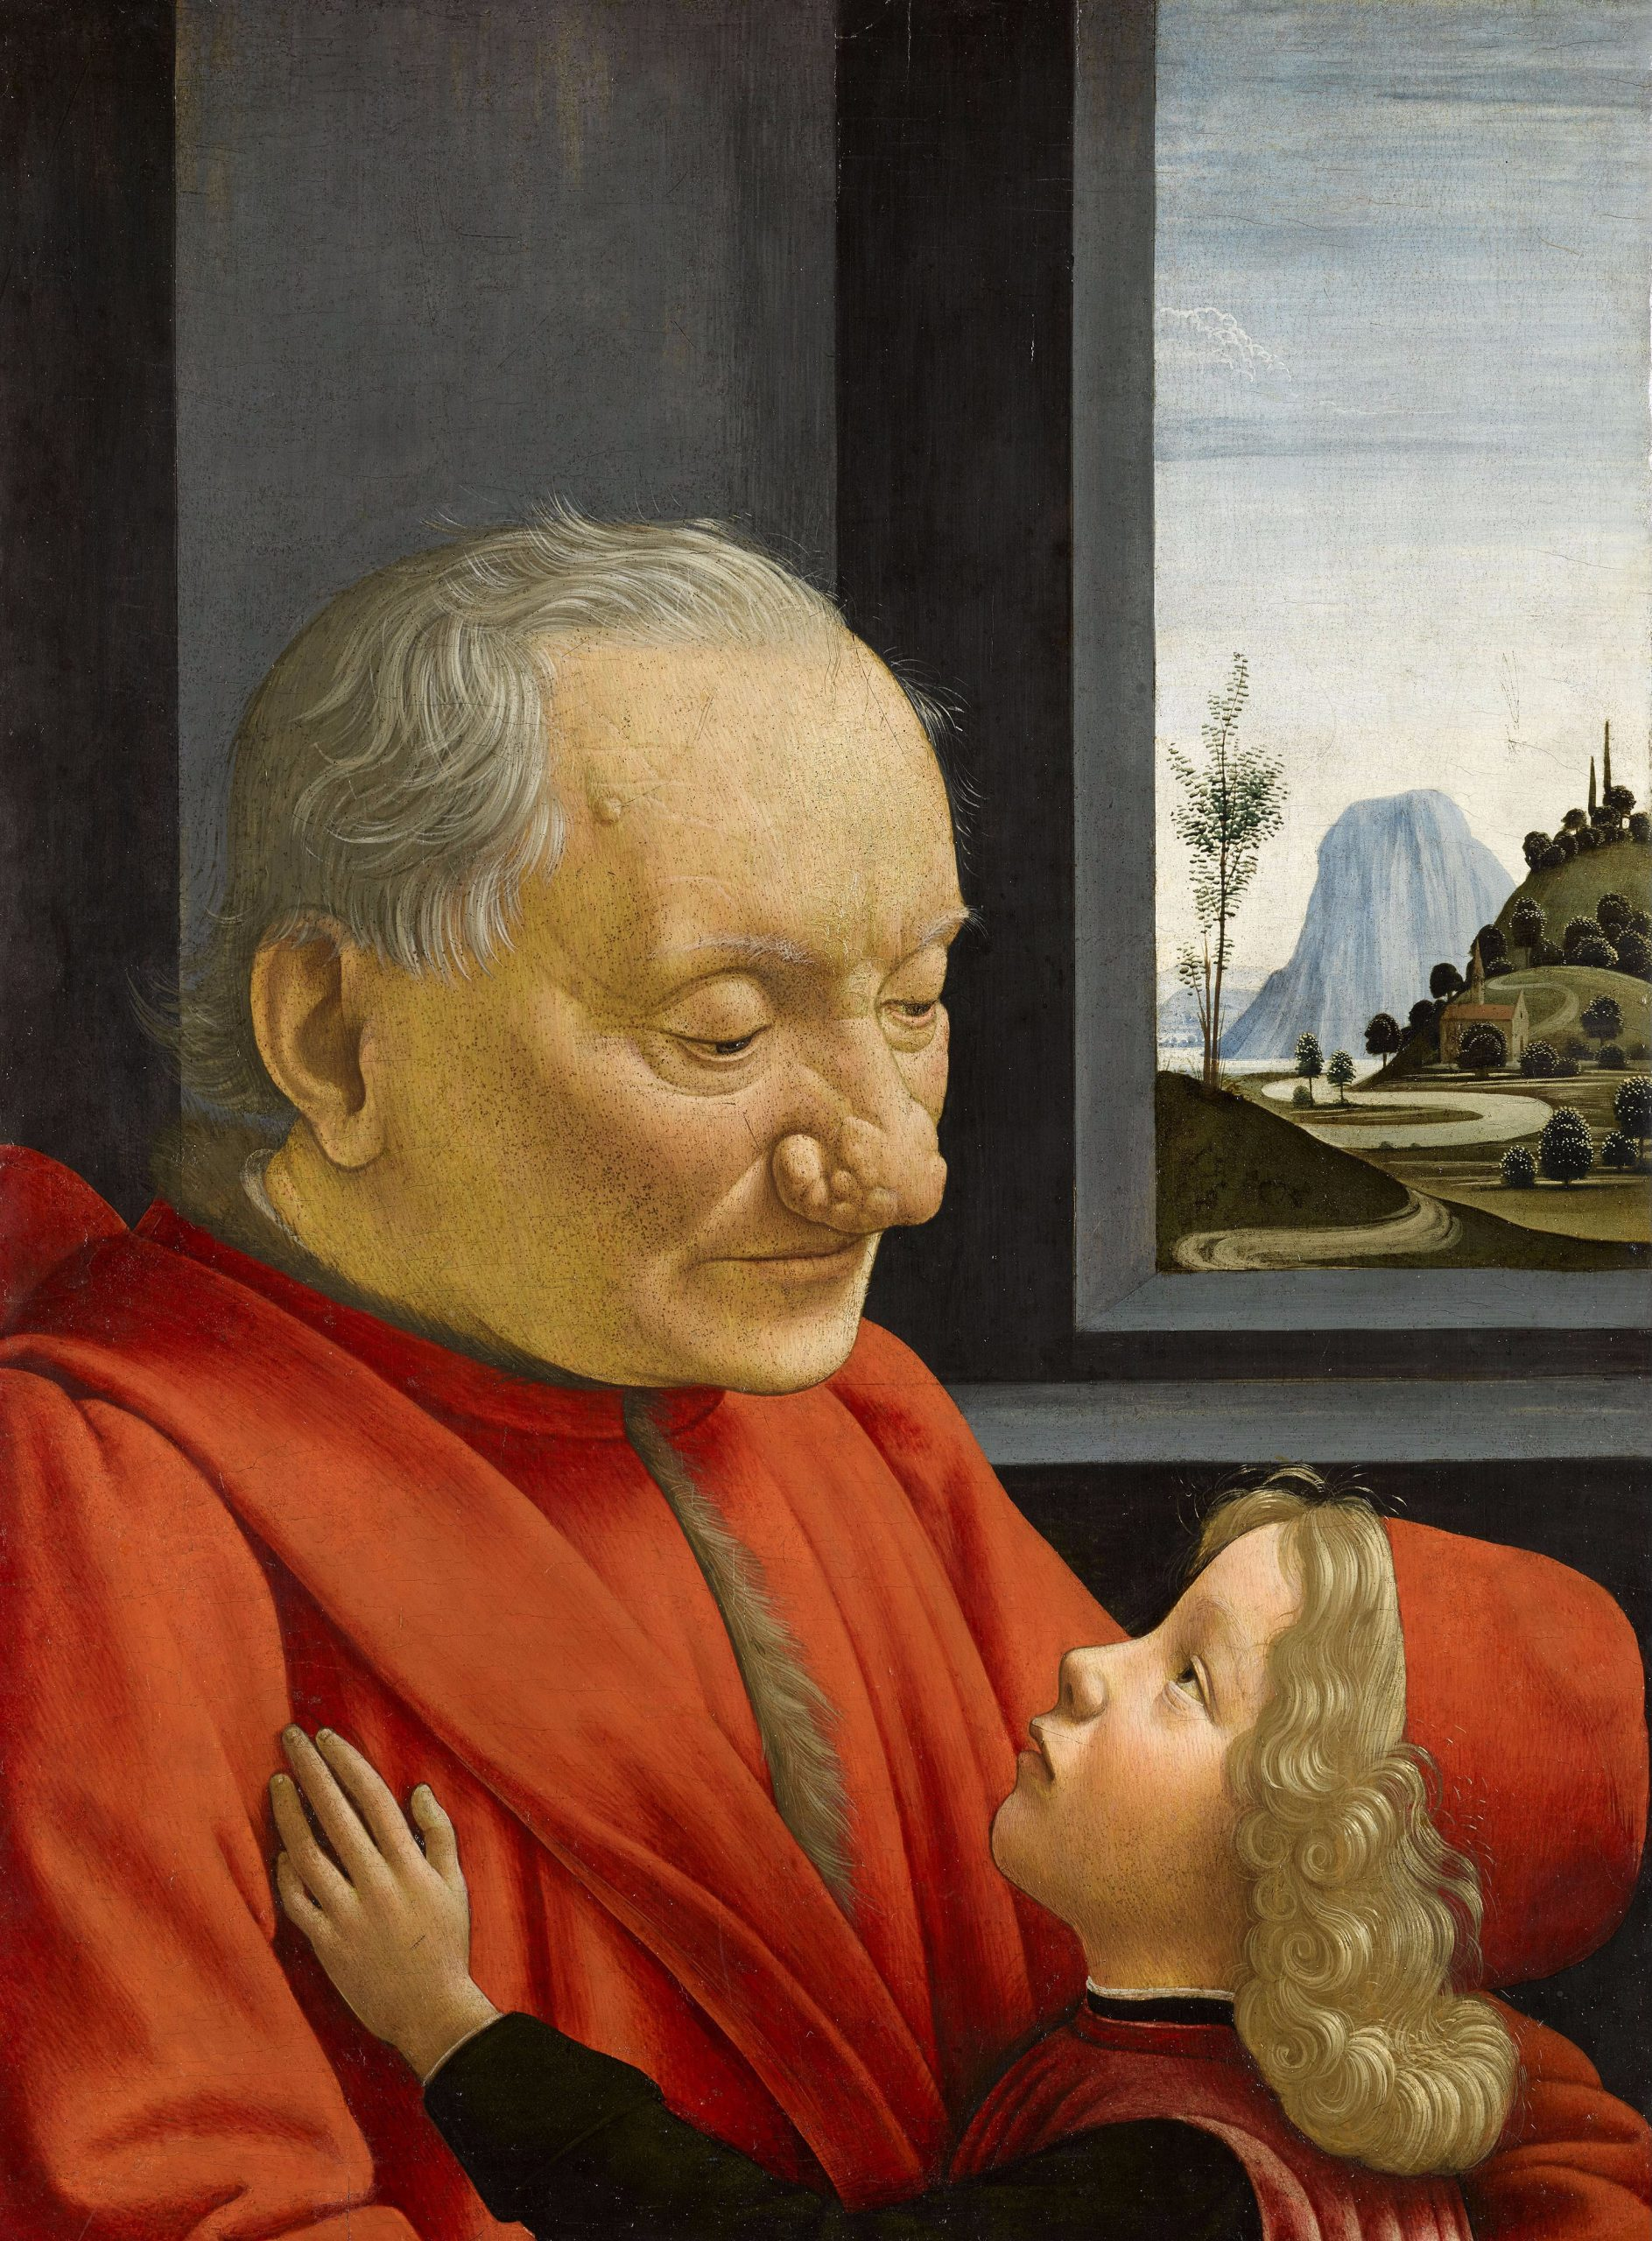 Domenico Ghirlandaio, An Old Man and his Grandson, c. 1480. Recreated April 23, 2021.